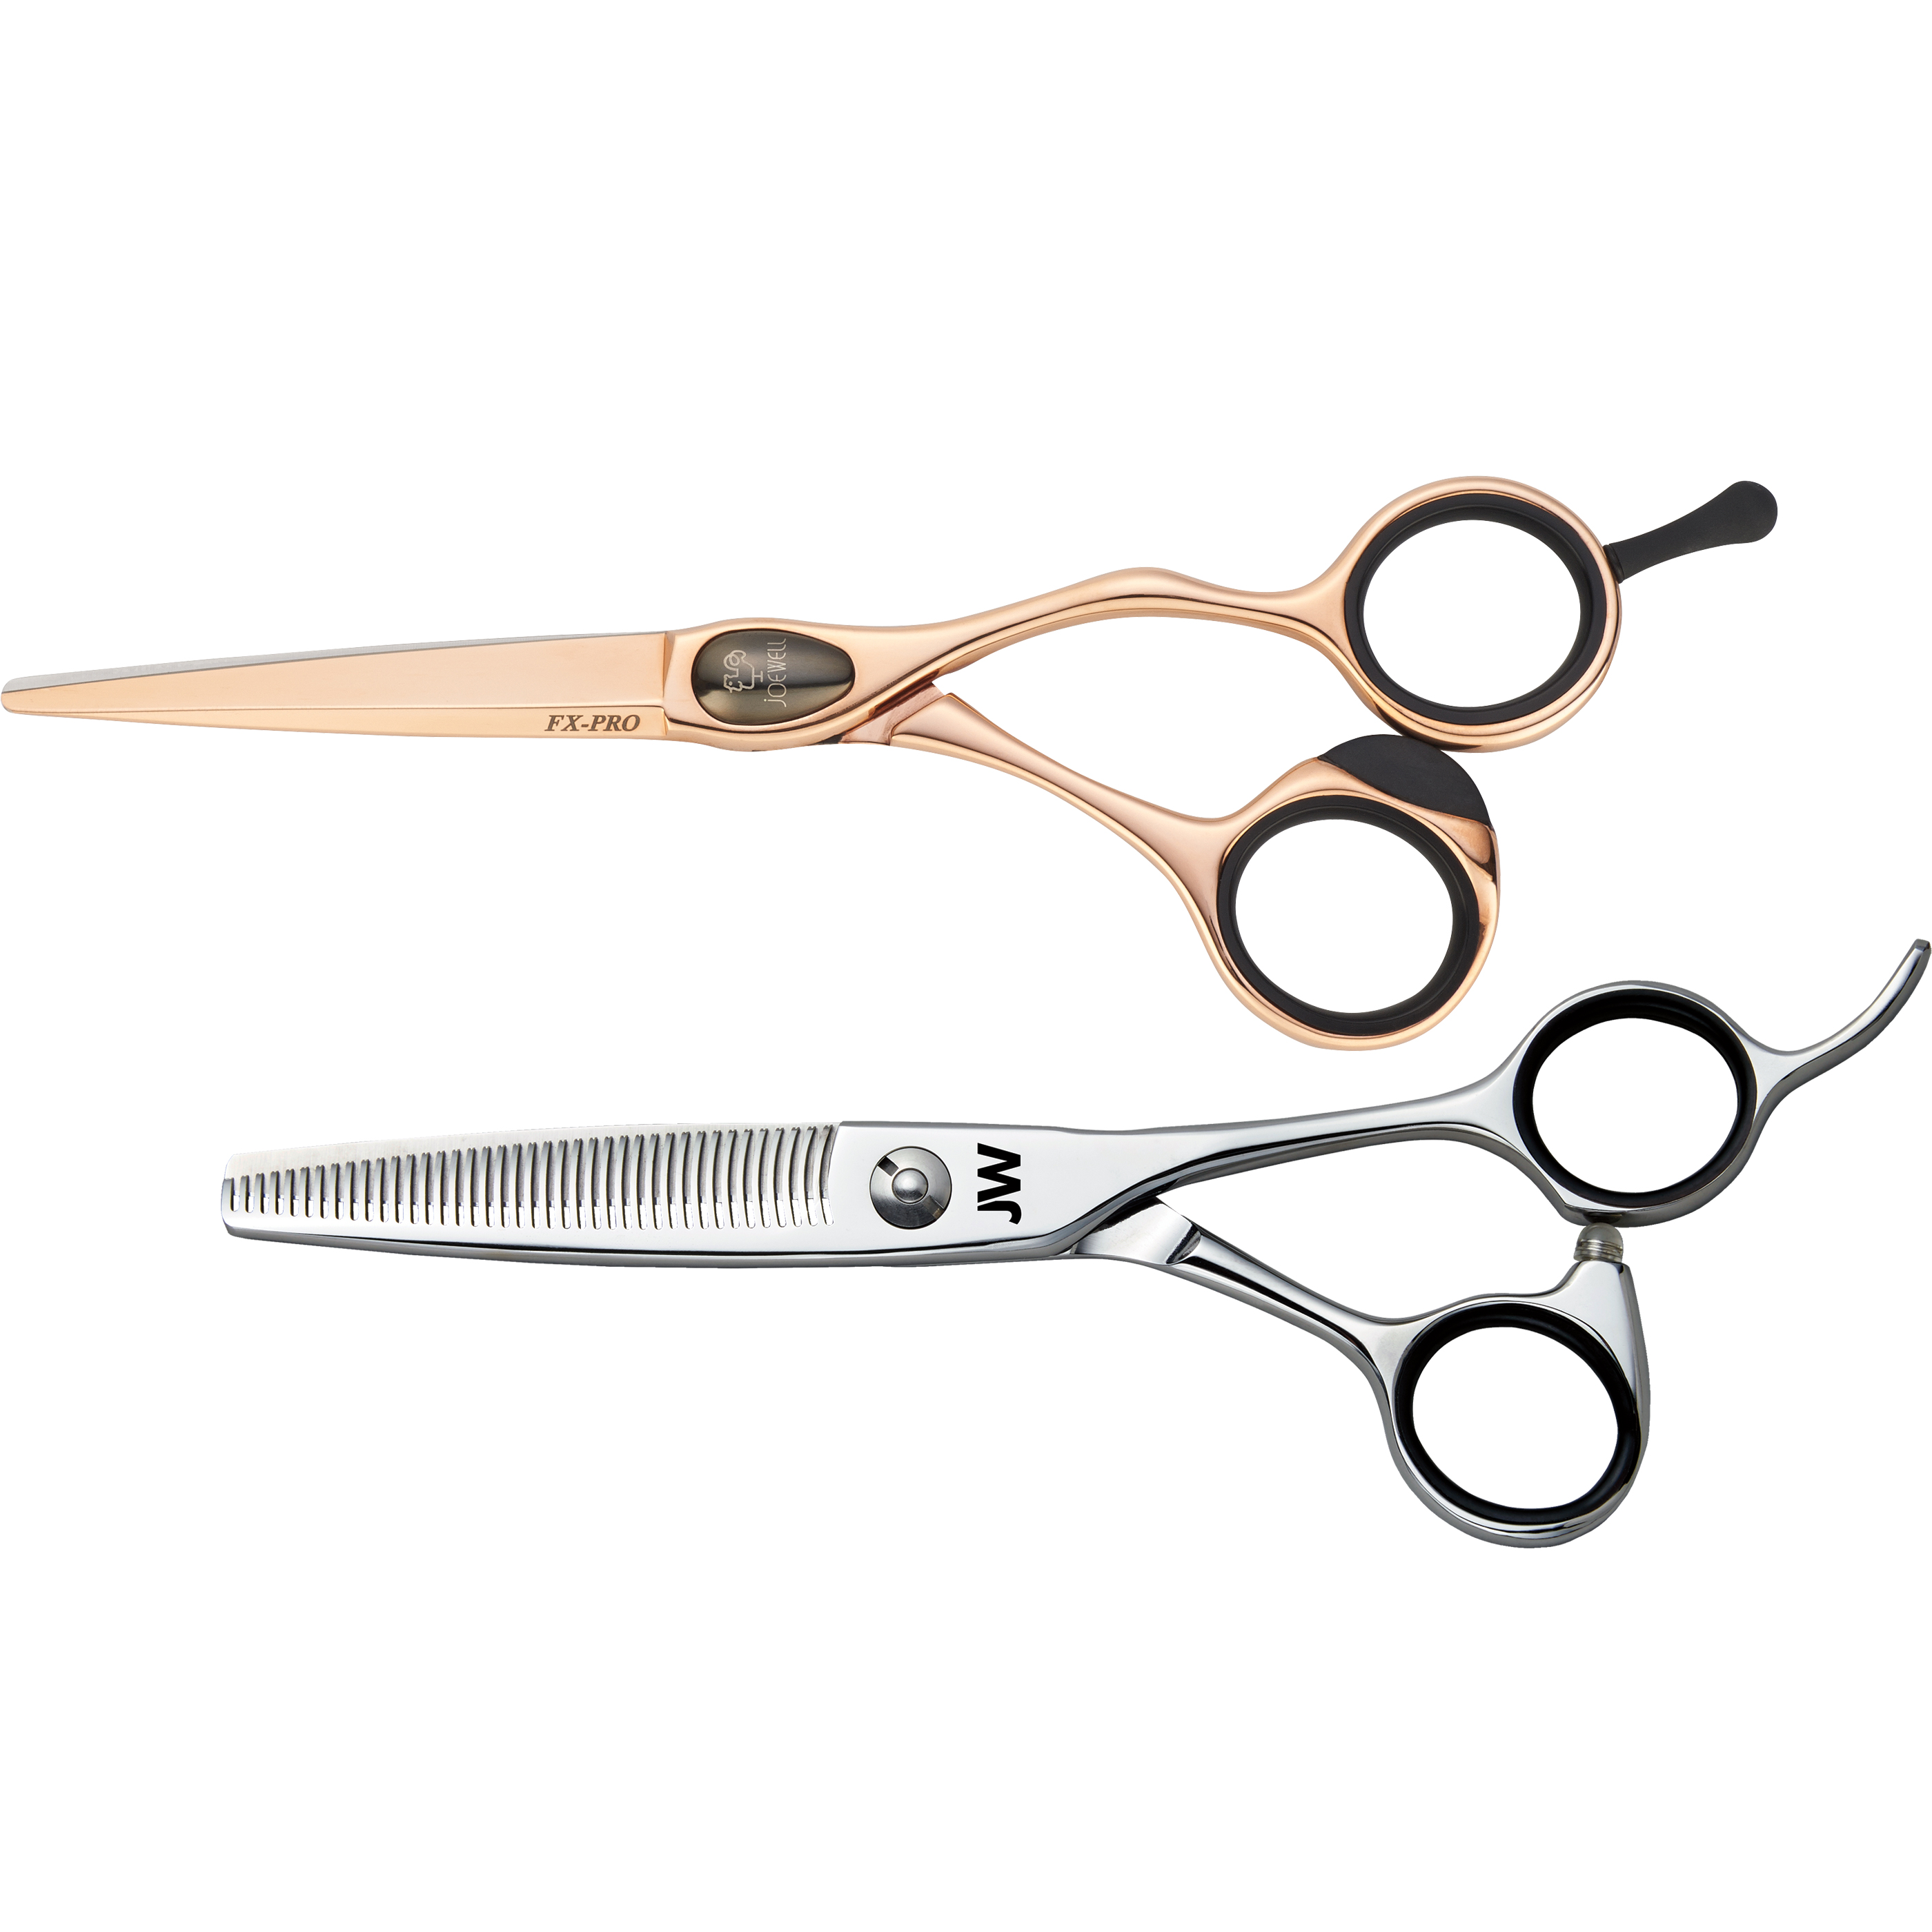 Joewell FX Pro Rose Gold Shear & Thinner Kit  - X1052-